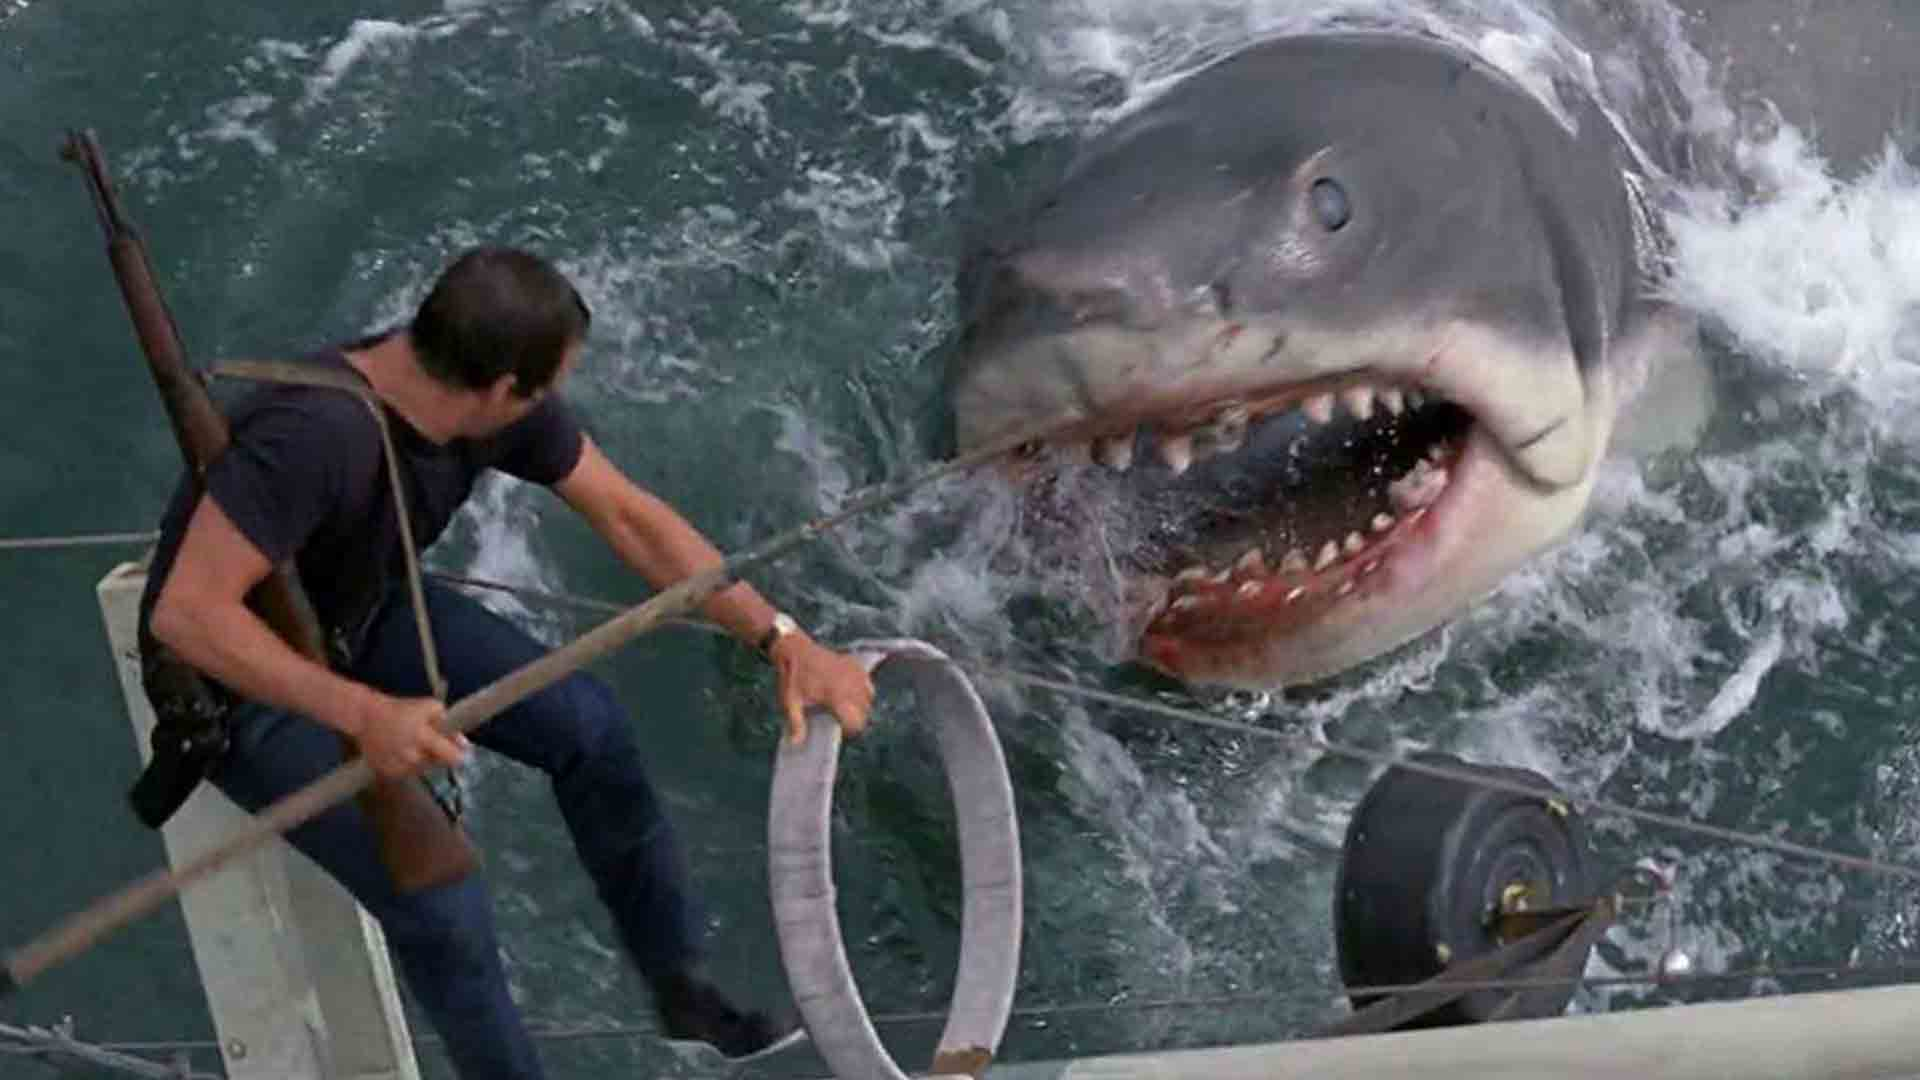 Shark hunter escaping from a shark in the movie Jaws